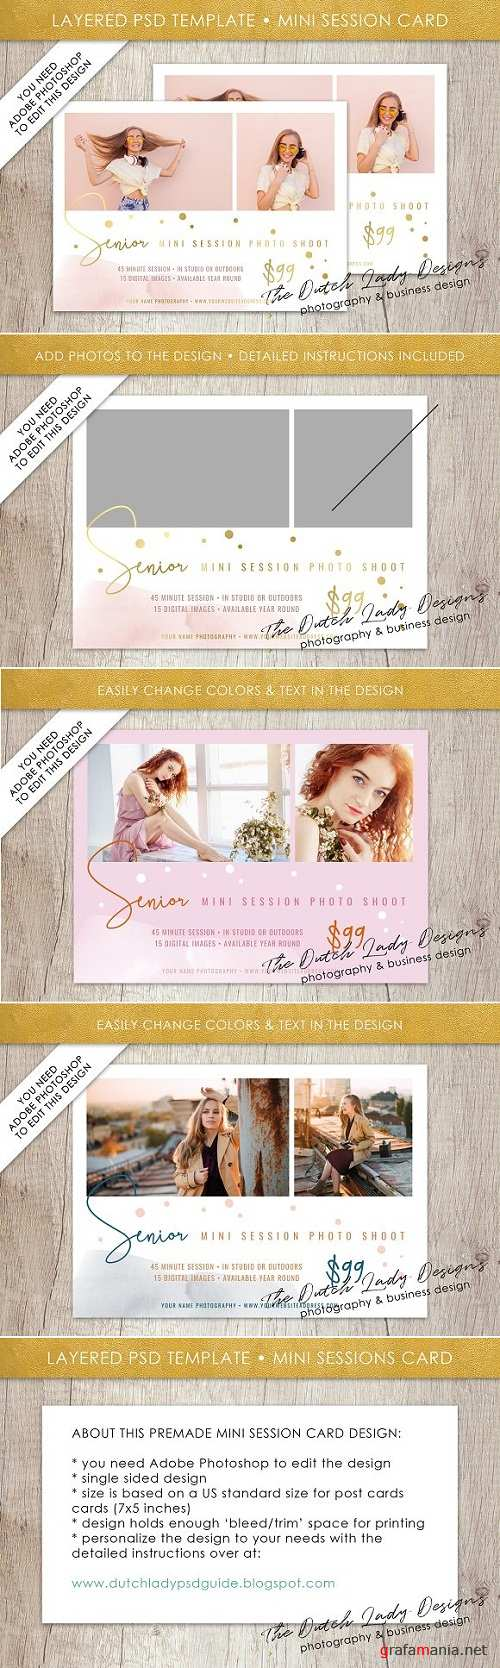 PSD Photo Session Card Template #32 - 3528073